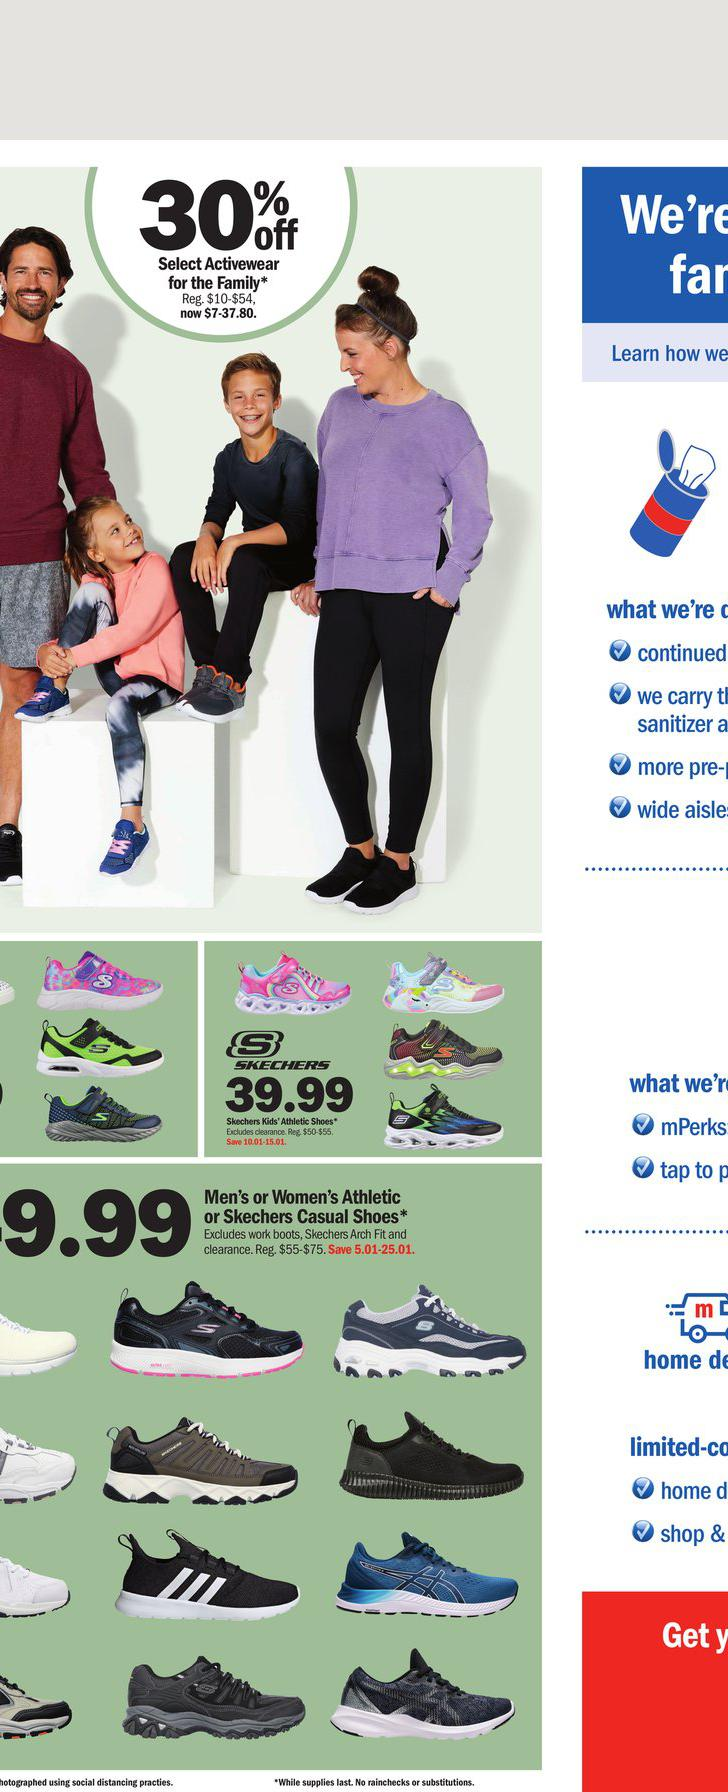 12.09.2021 Meijer ad 25. page